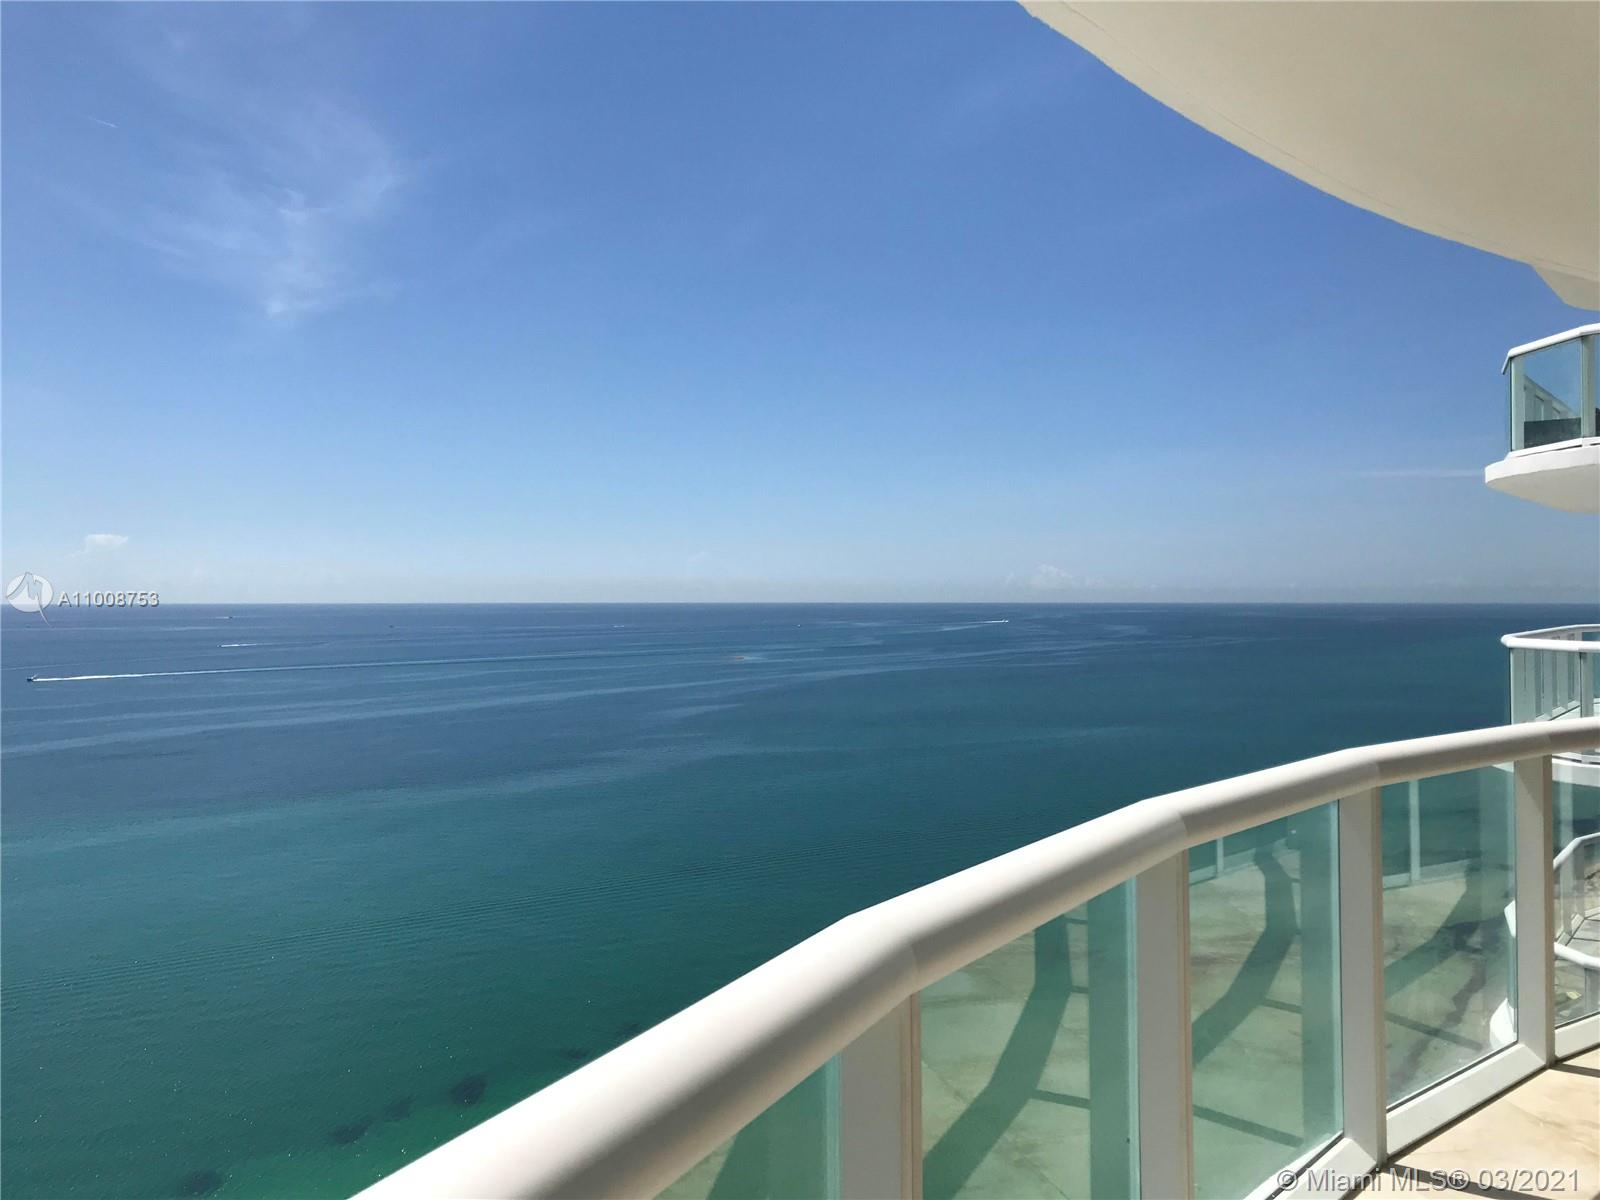 SPECTACULAR UNOBSTURCTED PANORAMIC VIEWS OF THE OCEAN FROM THIS 2 BDRMS 2 BATHS SPLIT FLOOR PLAN AT LUXURIOUS AKOYA CONDOMINIUM IN MIAMI BEACH.  BEST LINE IN THE BUILDING  UNIT FEATURES MARBLE FLOORS FLOOR TO CEILING WINDOWS EUROPEAN KITCHEN WASHER DRYER INSIDE THE UNIT. THE AMENITIES INCLUDE POOL JACUZZI SAUNA MASSAGE ROOM STATE OF THE ART GYM 24 HRS CONCIERGE VALET PARKING CLOSE TO SOUTH BEACH AND BAL HARBOUR SHOPS